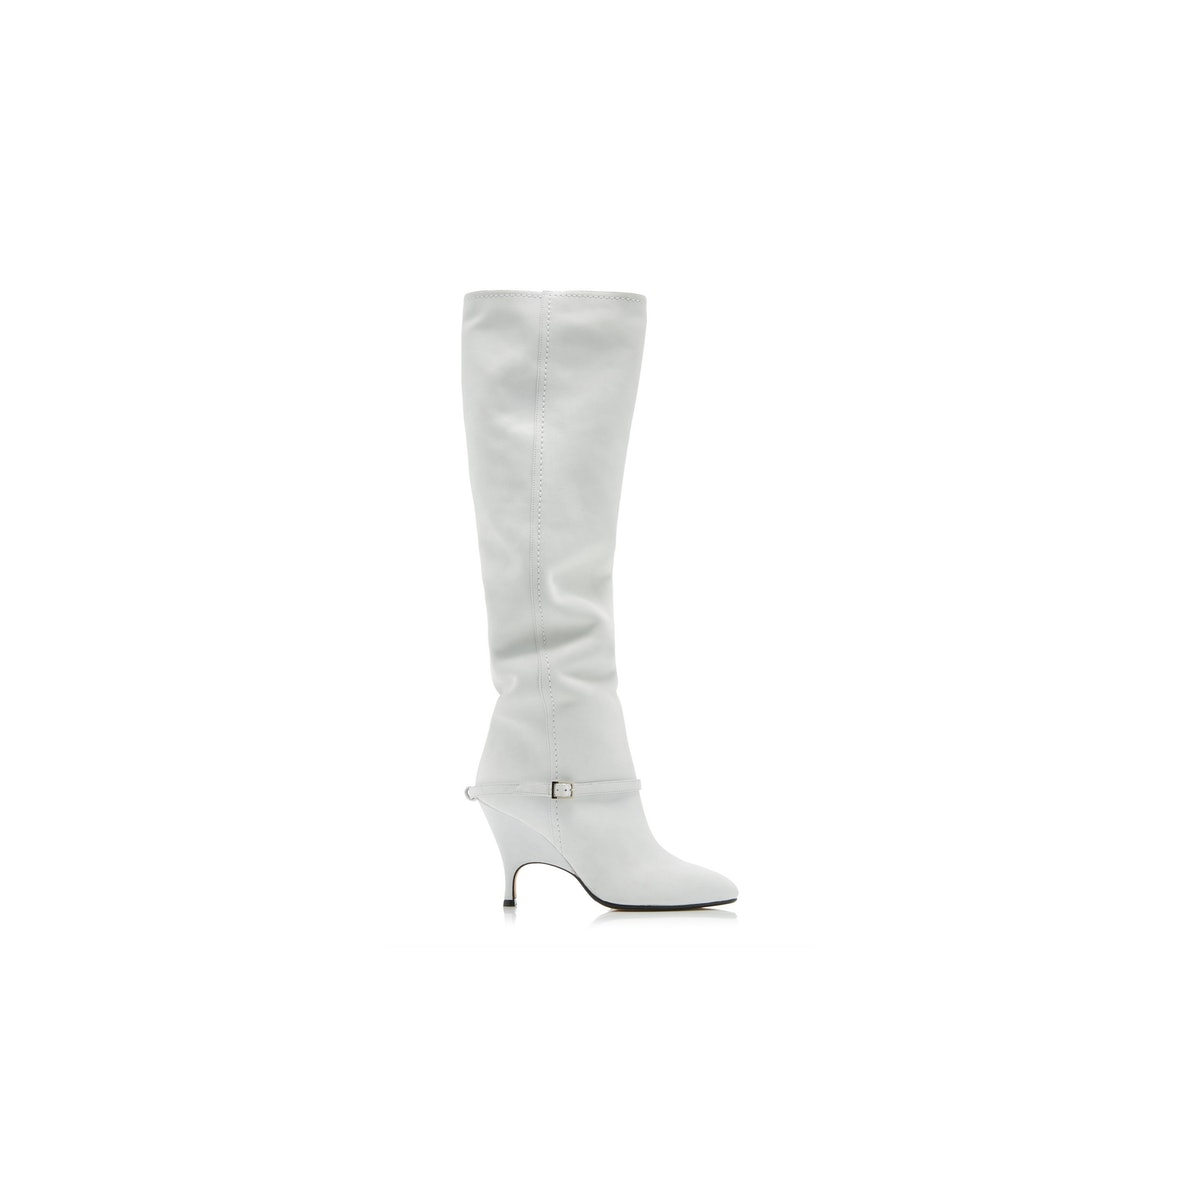 Tall boots7.png